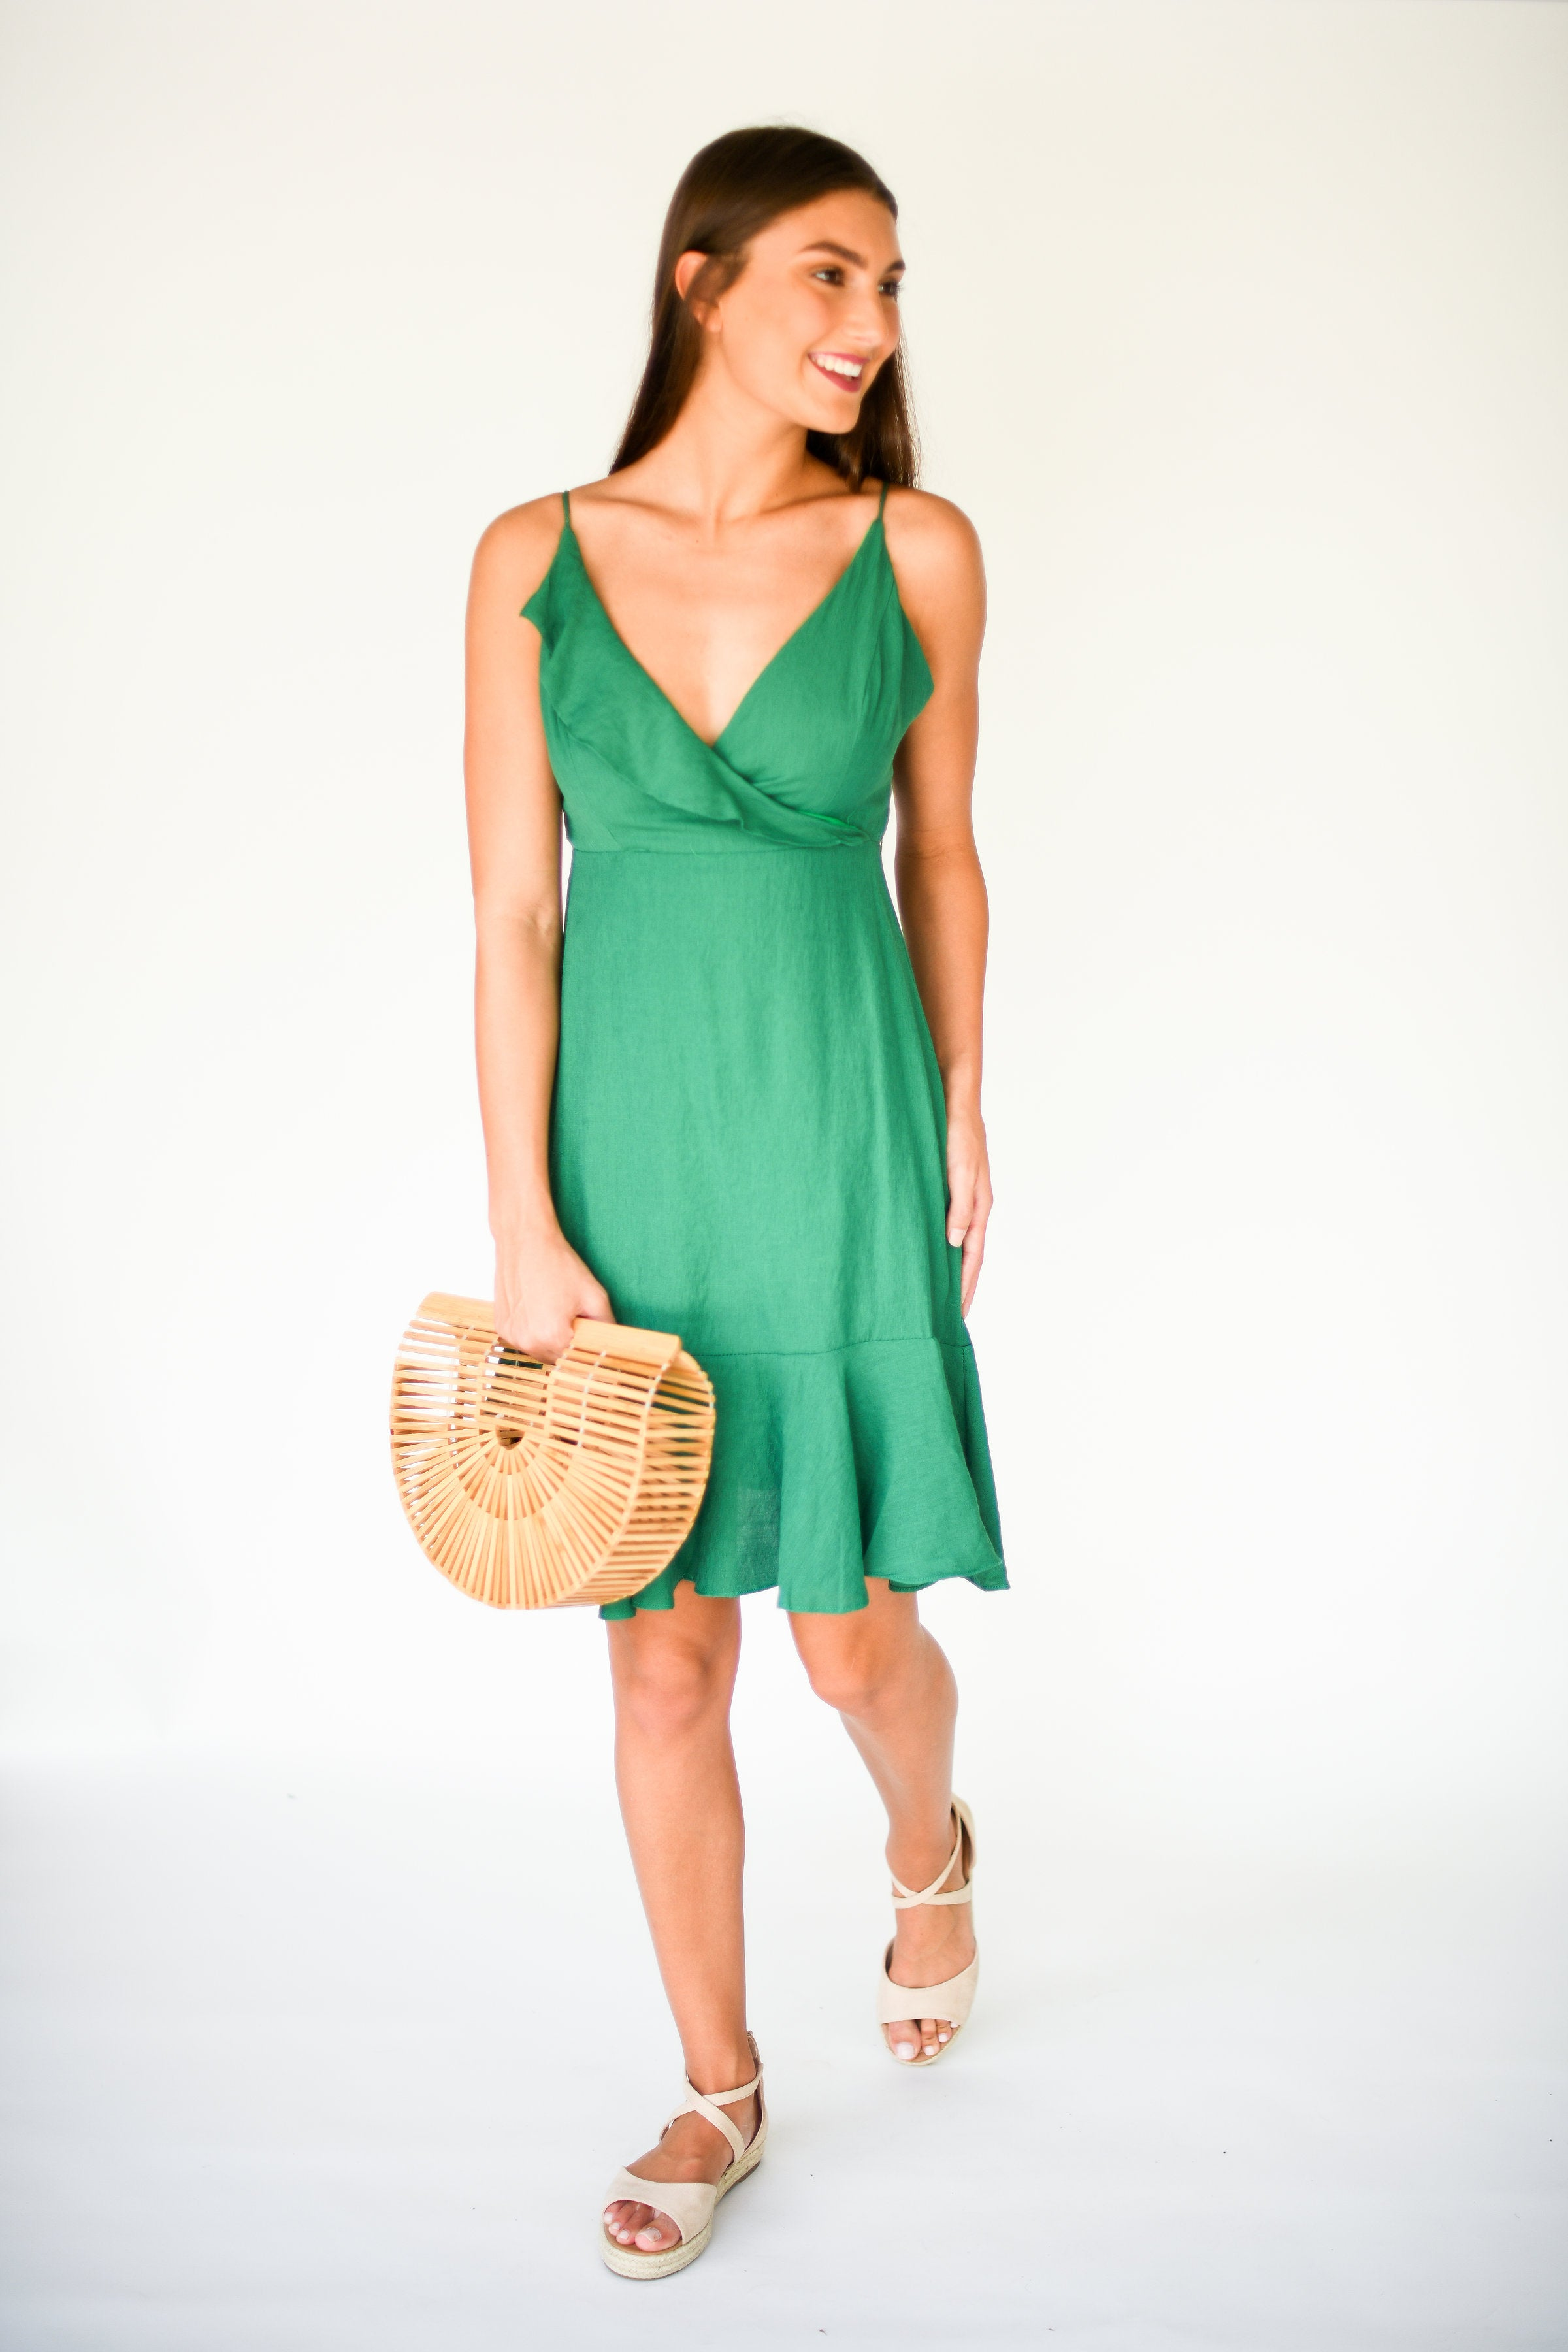 Gorgeous in Green Midi Dress with Ruffle Hem:  Kelly Green